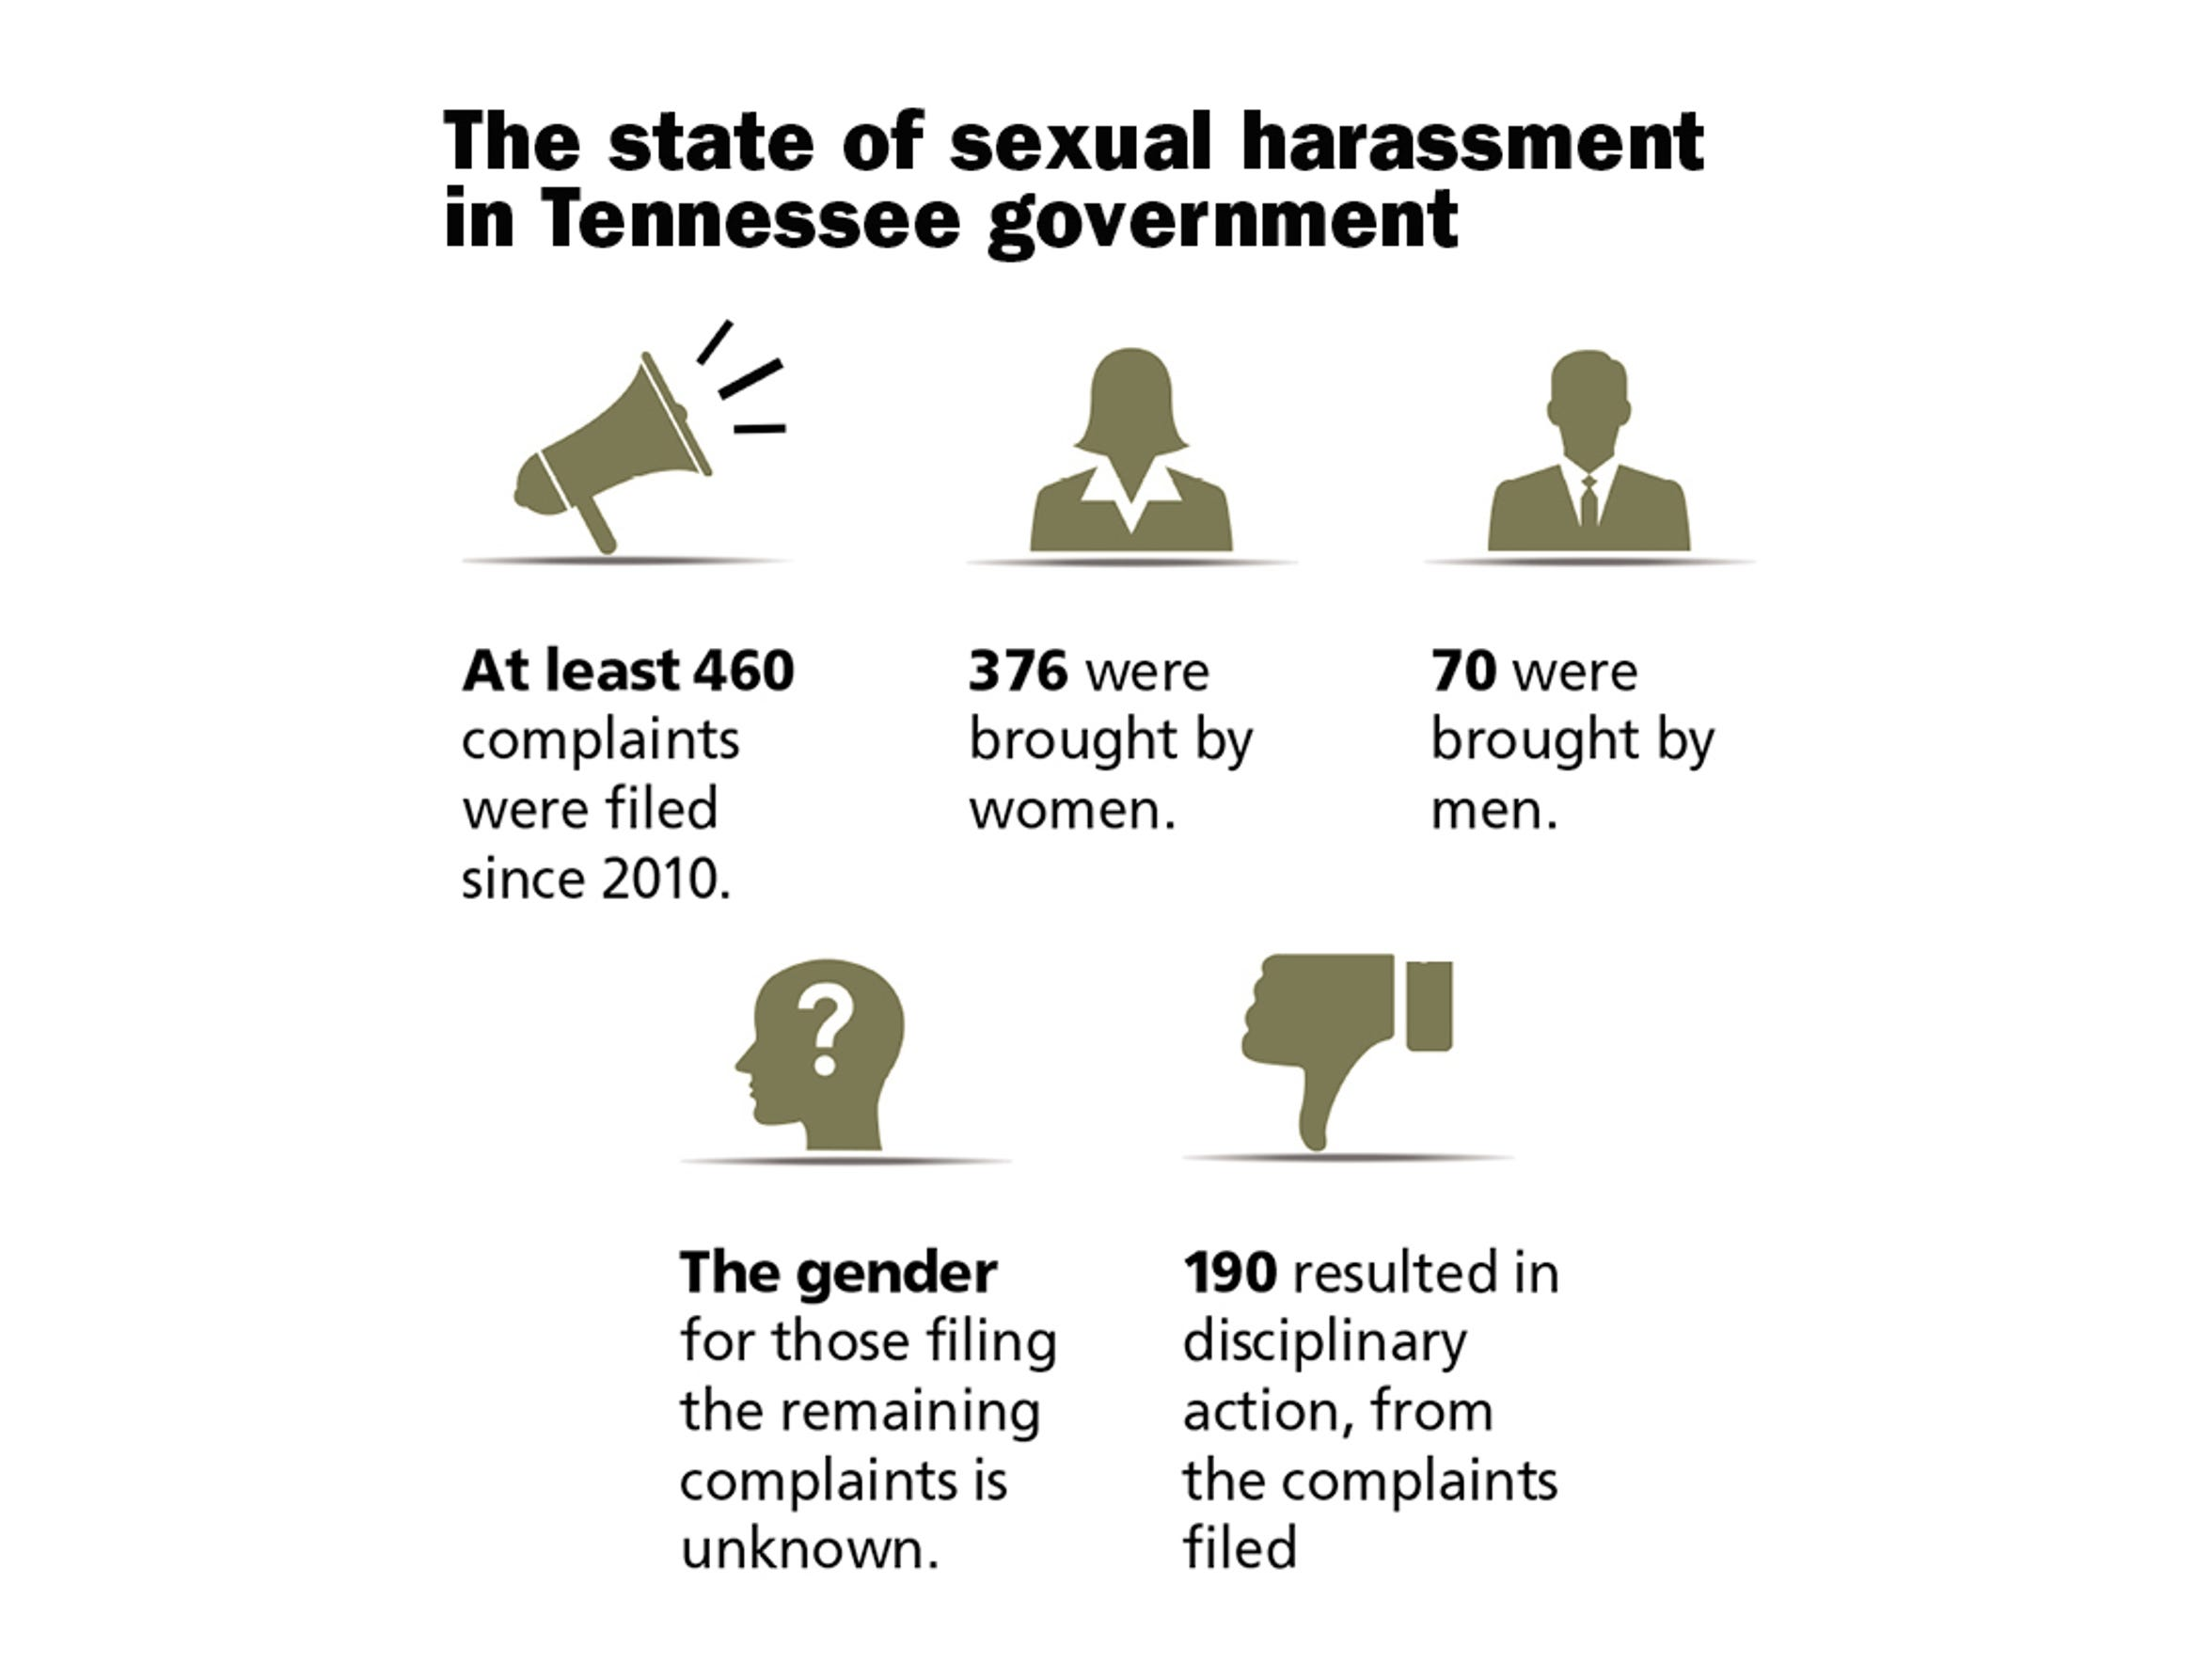 The state of sexual harassment in Tennessee government.